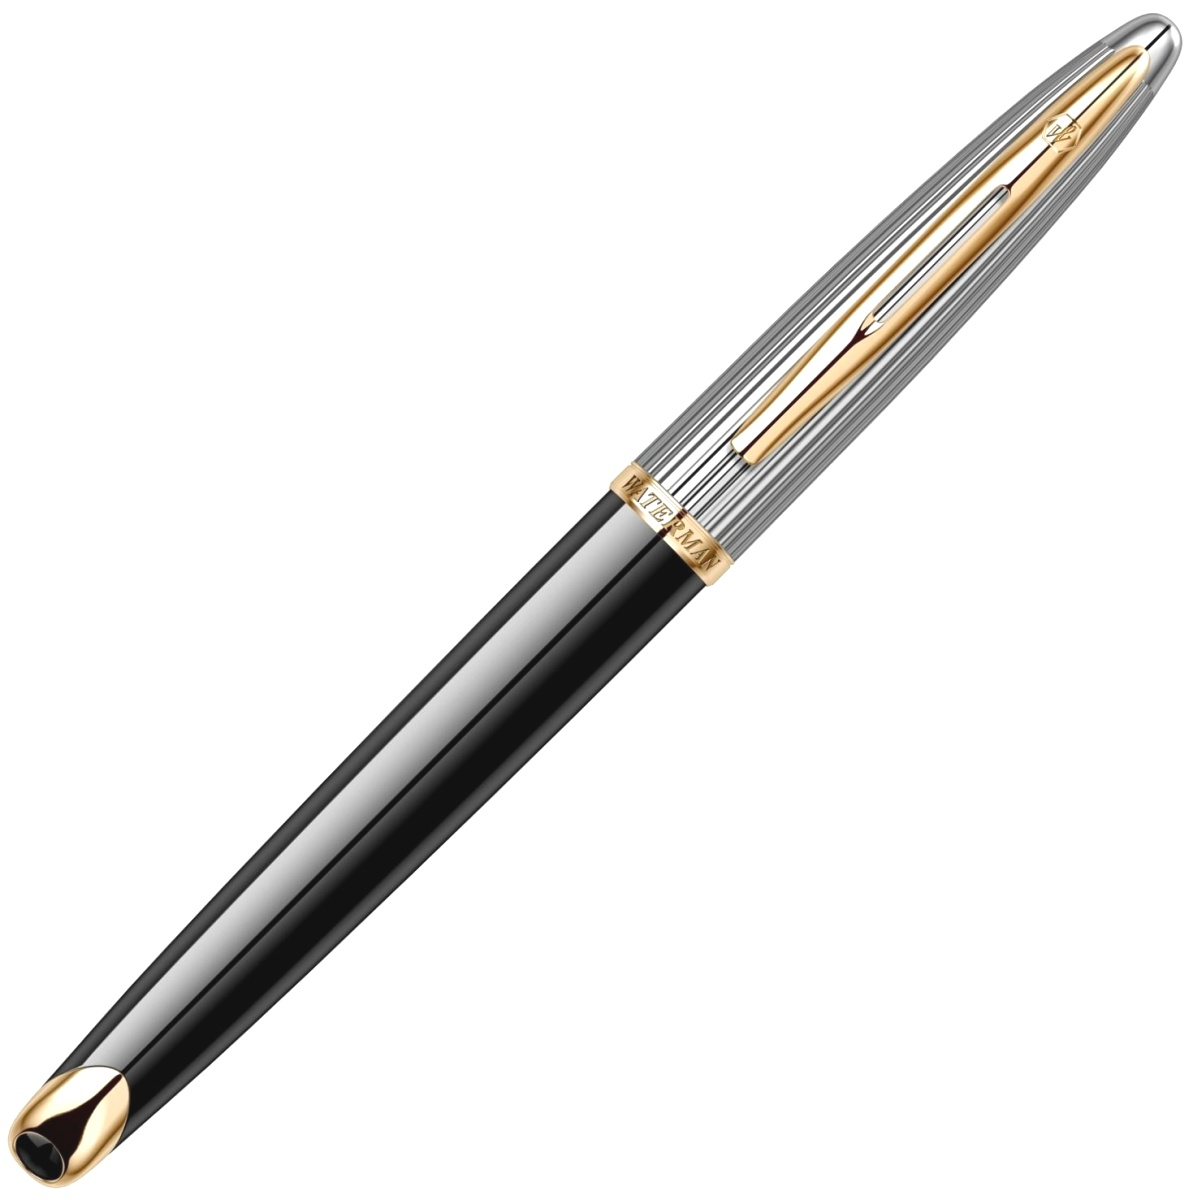 Ручка-роллер Waterman Carene DeLuxe, Black GT, фото 4